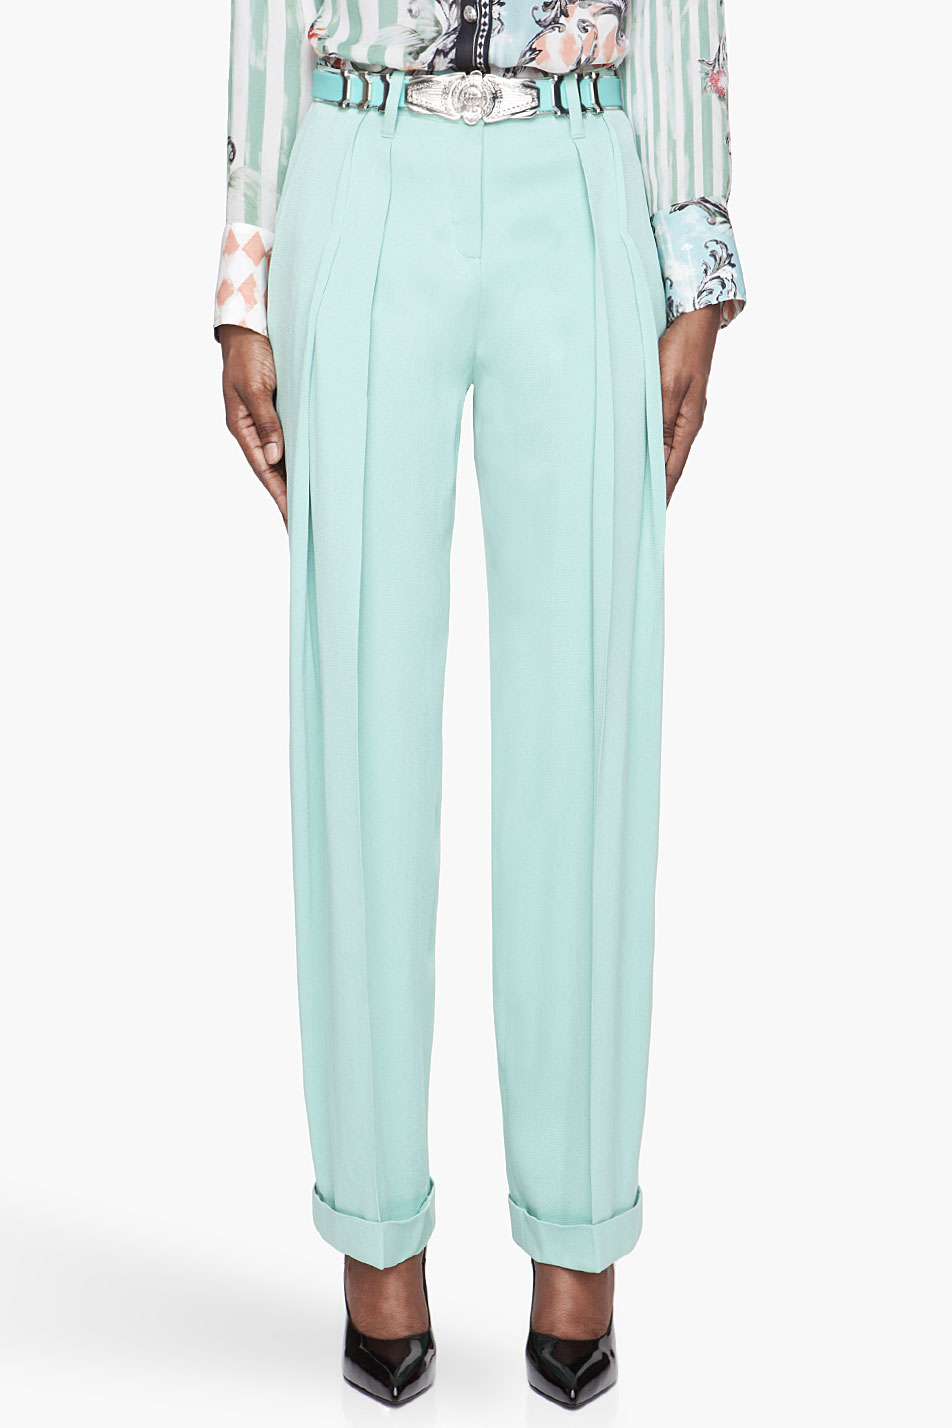 balmain mint green pleated silk trousers